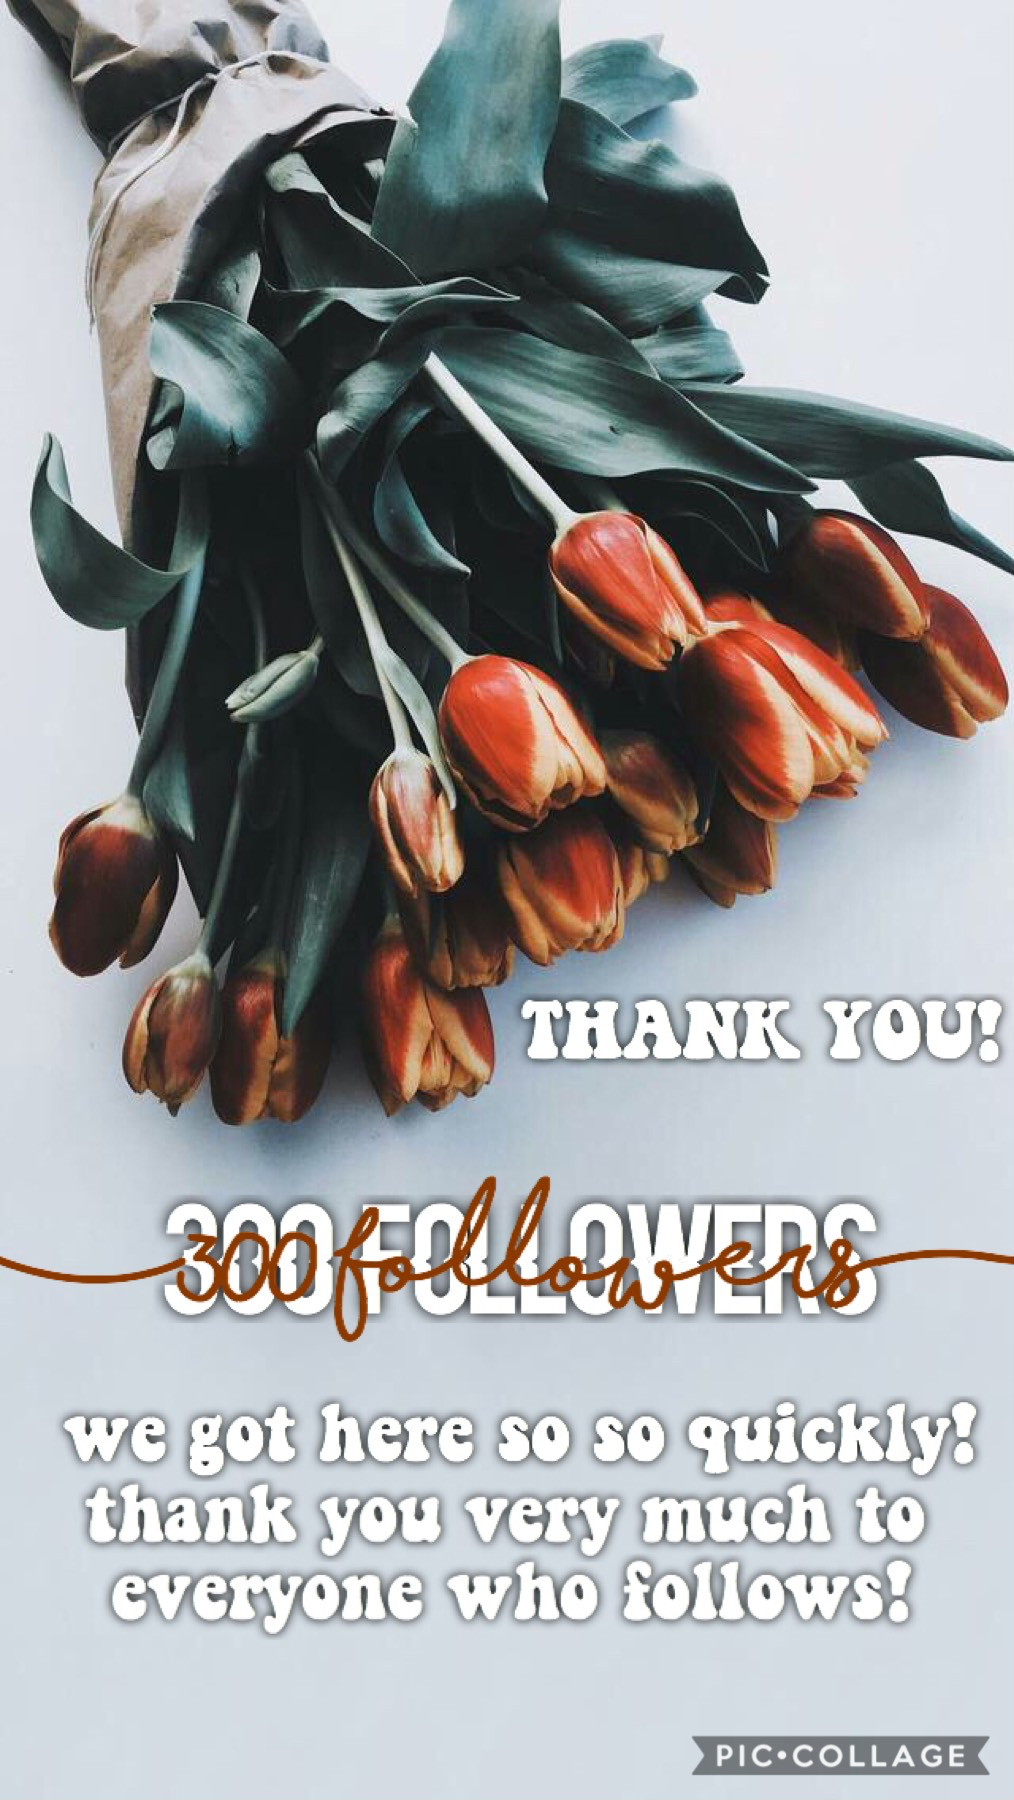 300 followers... 🤩 thank you so so so much everyone!!! i would like to do something for everyone but i don't know what i could do 😬😬 any suggestions anybody? -lots of love, ella 🤩💓